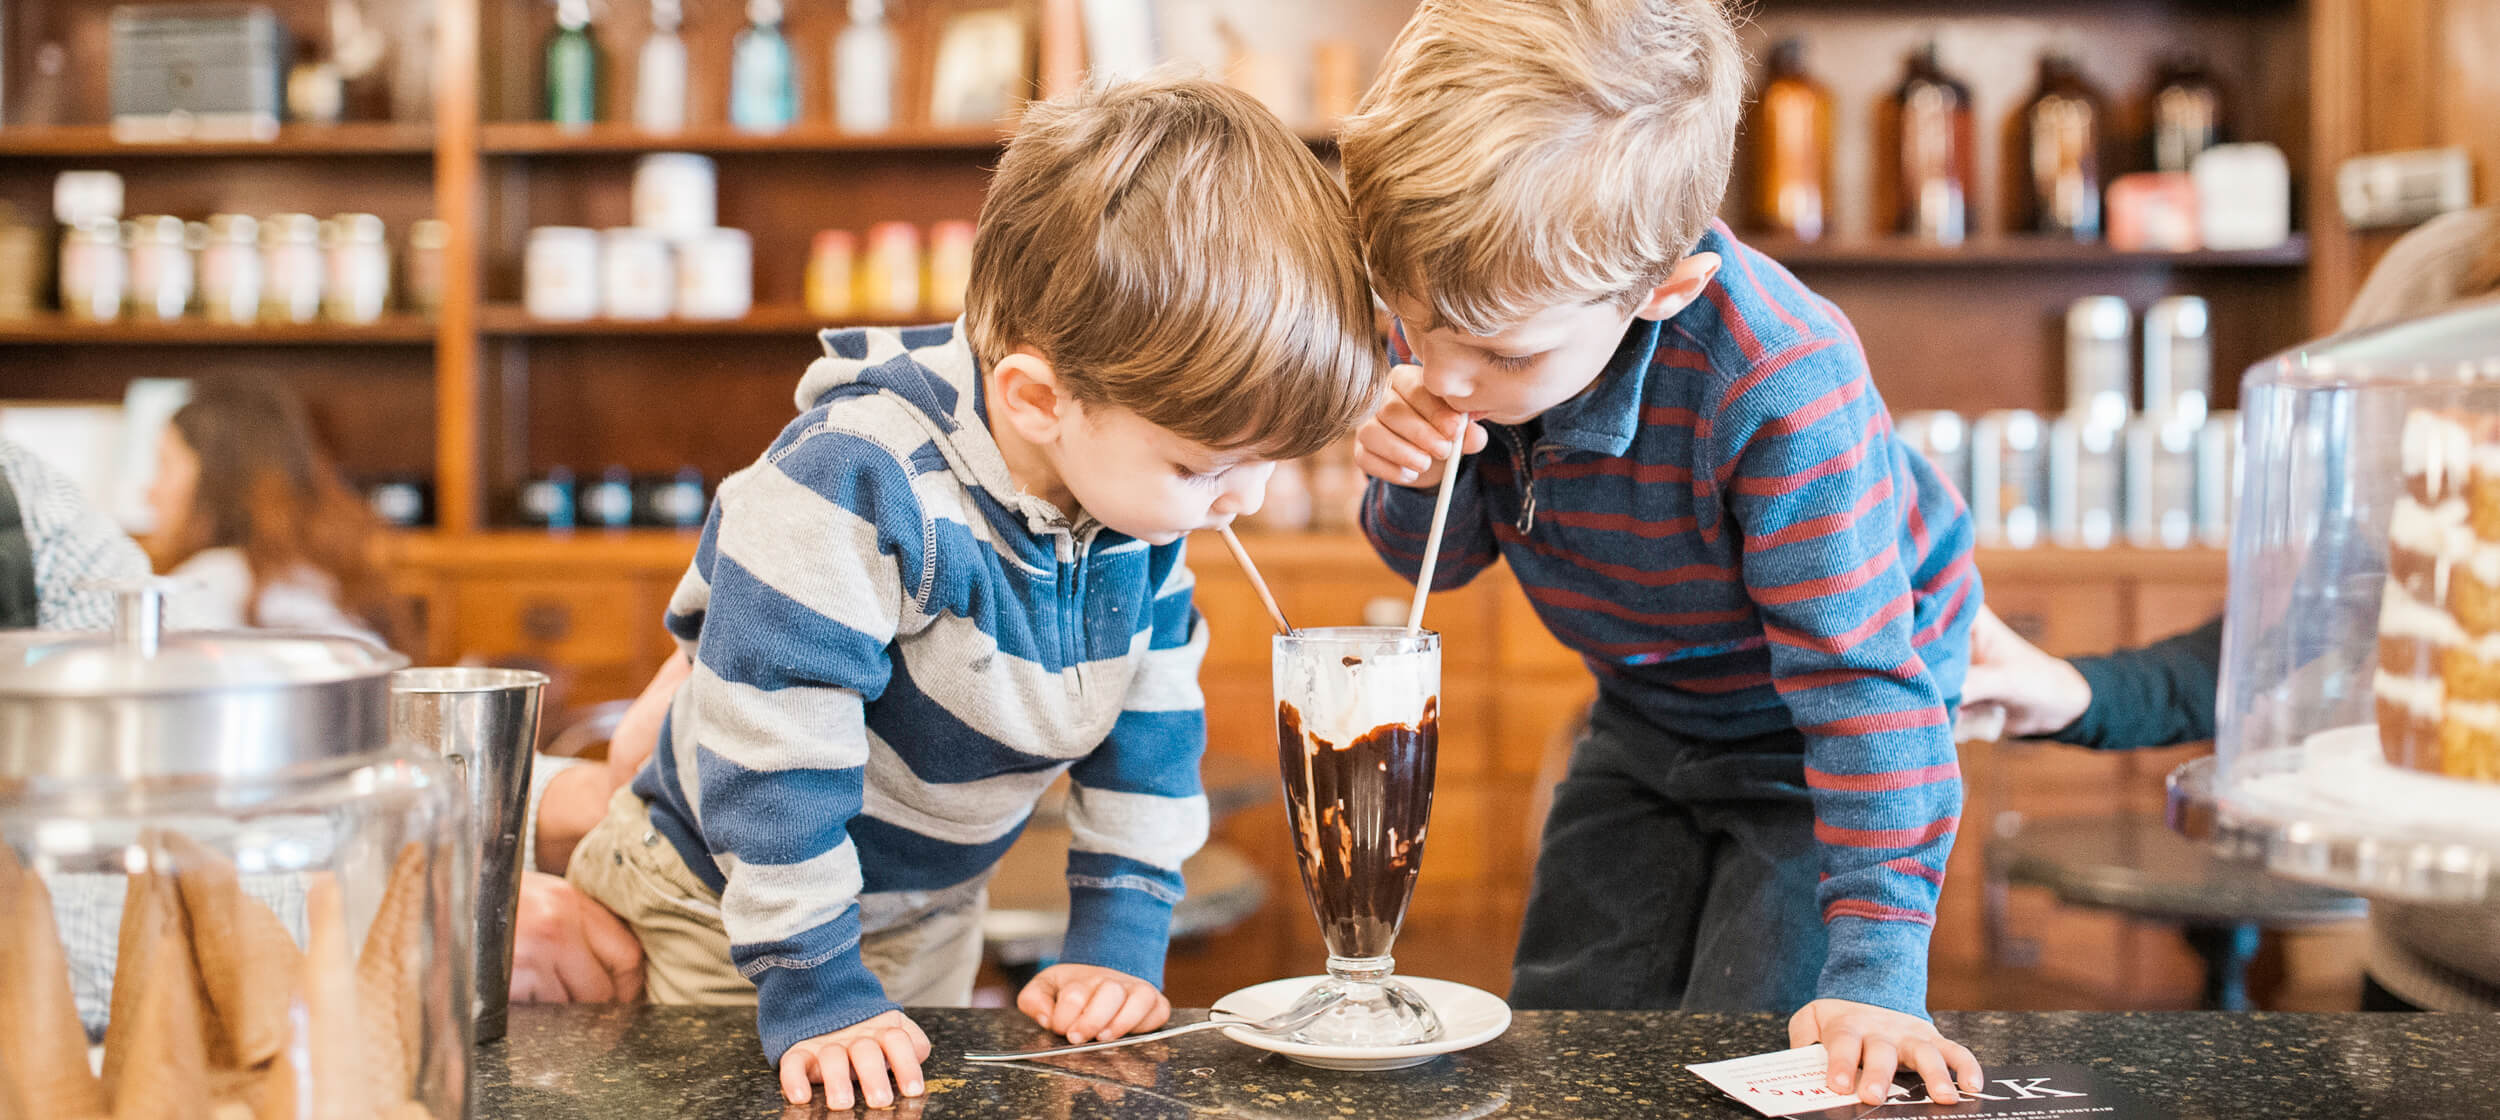 family-experience-banner-image-brothers-brooklyn-farmacy-nyc.jpg